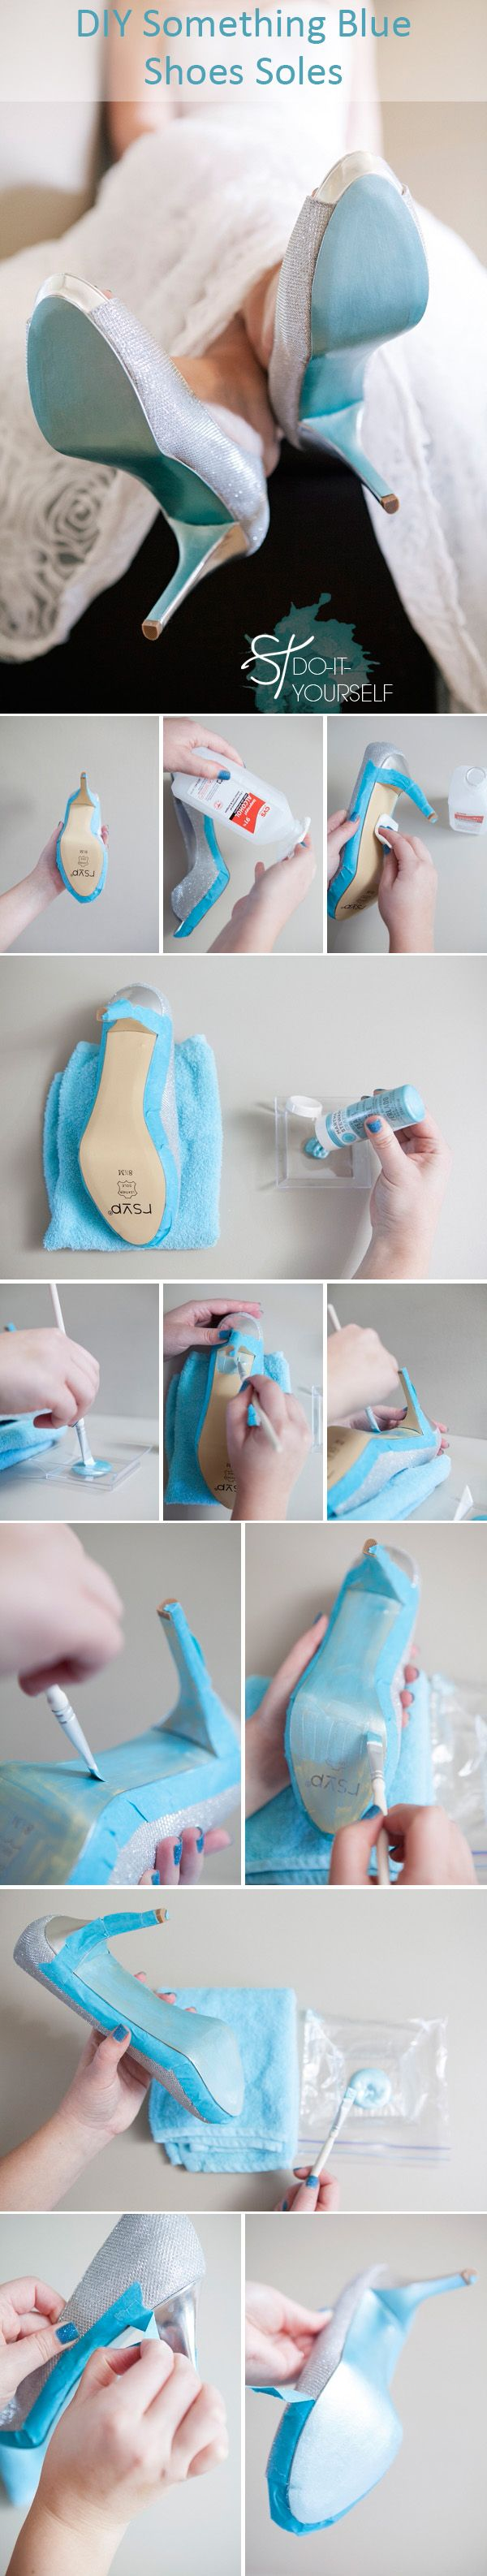 diy wedding ideas Tiffany themed something blue wedding shoes soles